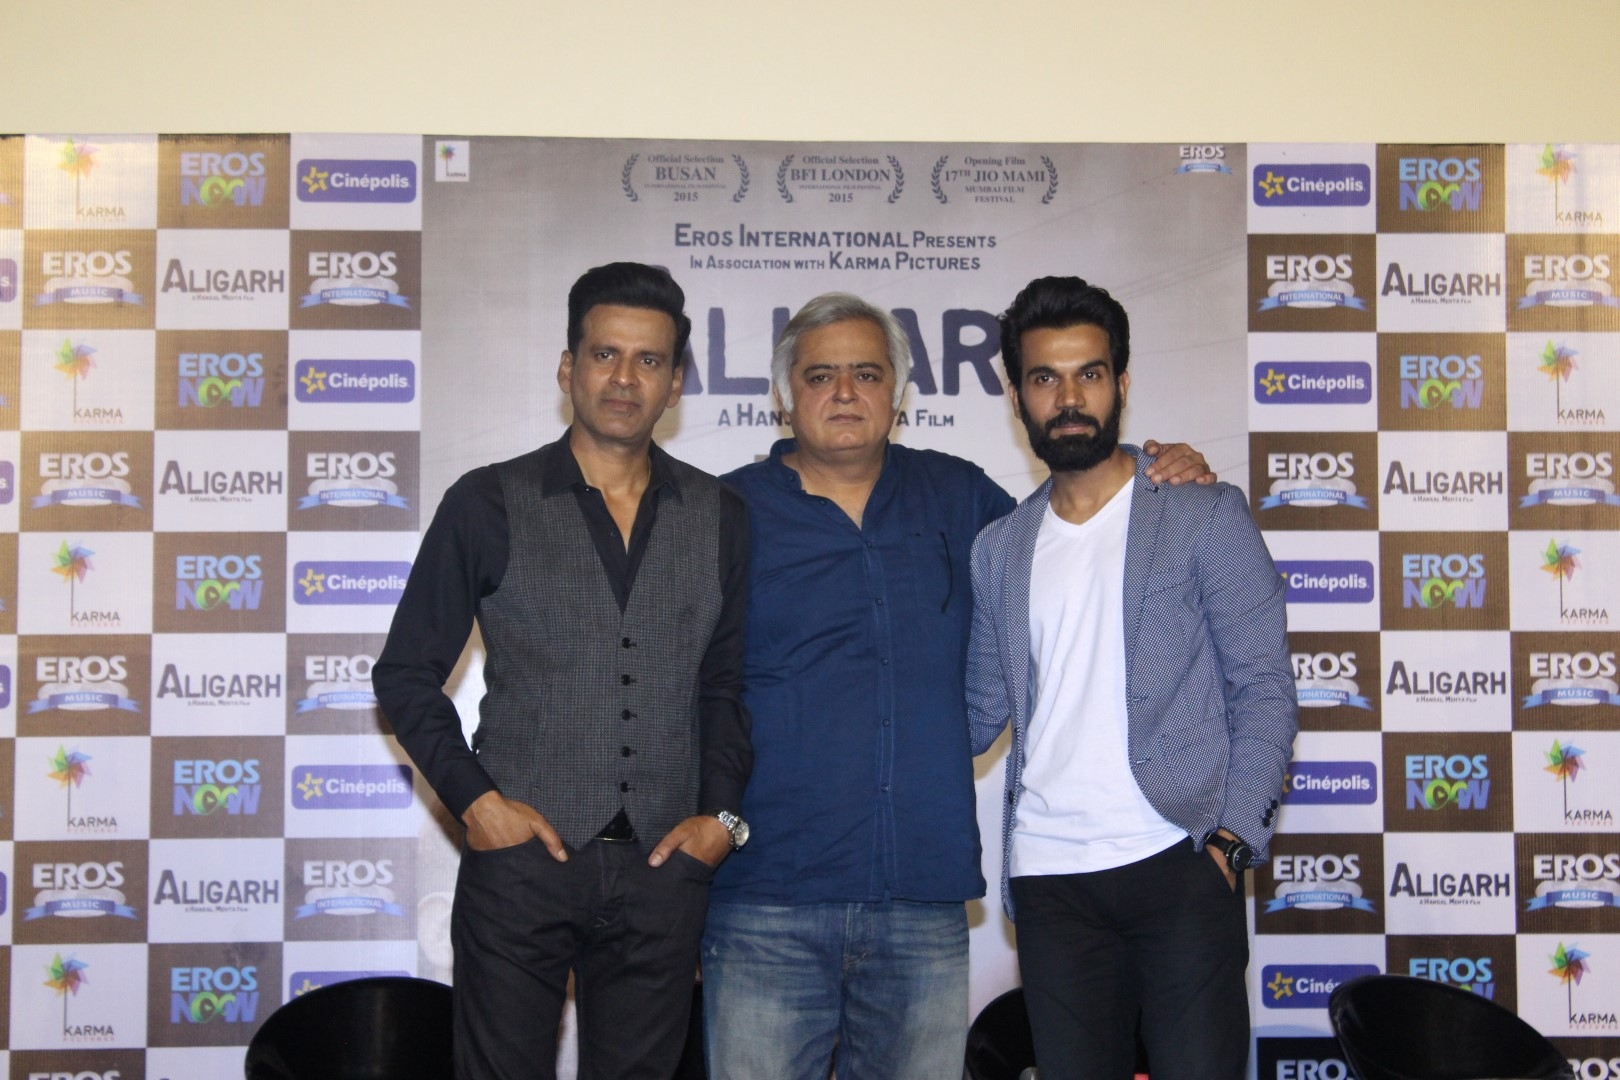 Manoj Bajpayee & Rajkumar Rao at Aligarh Movie Trailer Launch